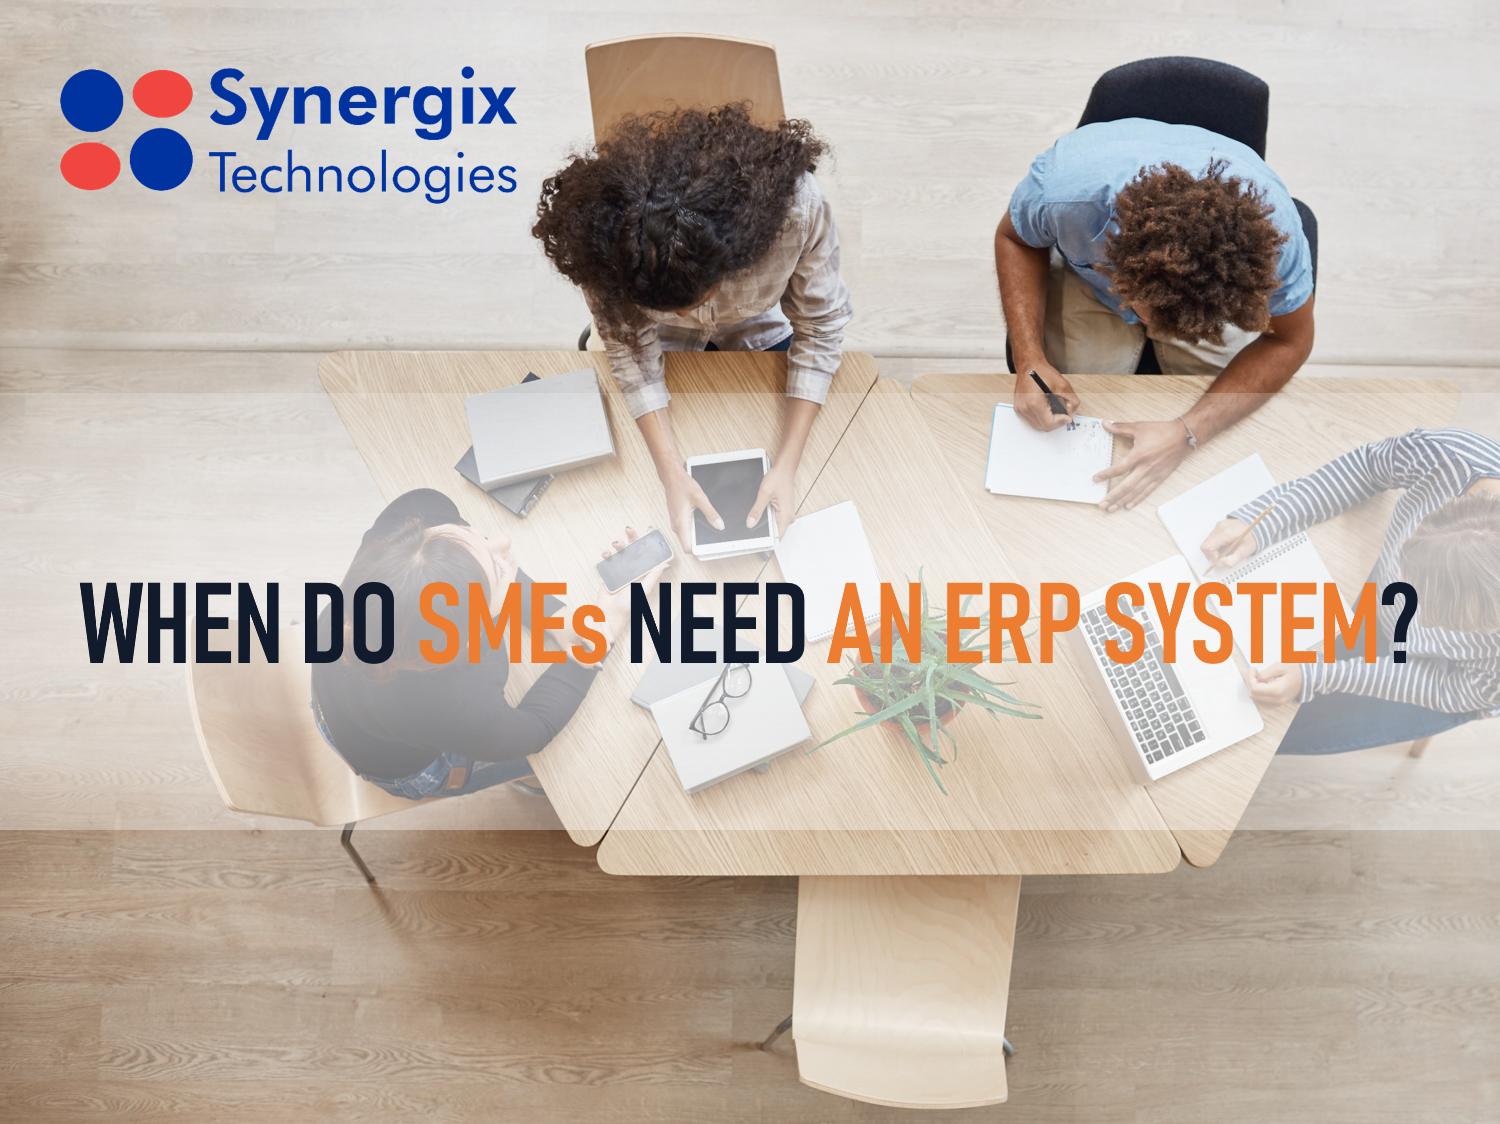 When Do SMEs Need an ERP System?